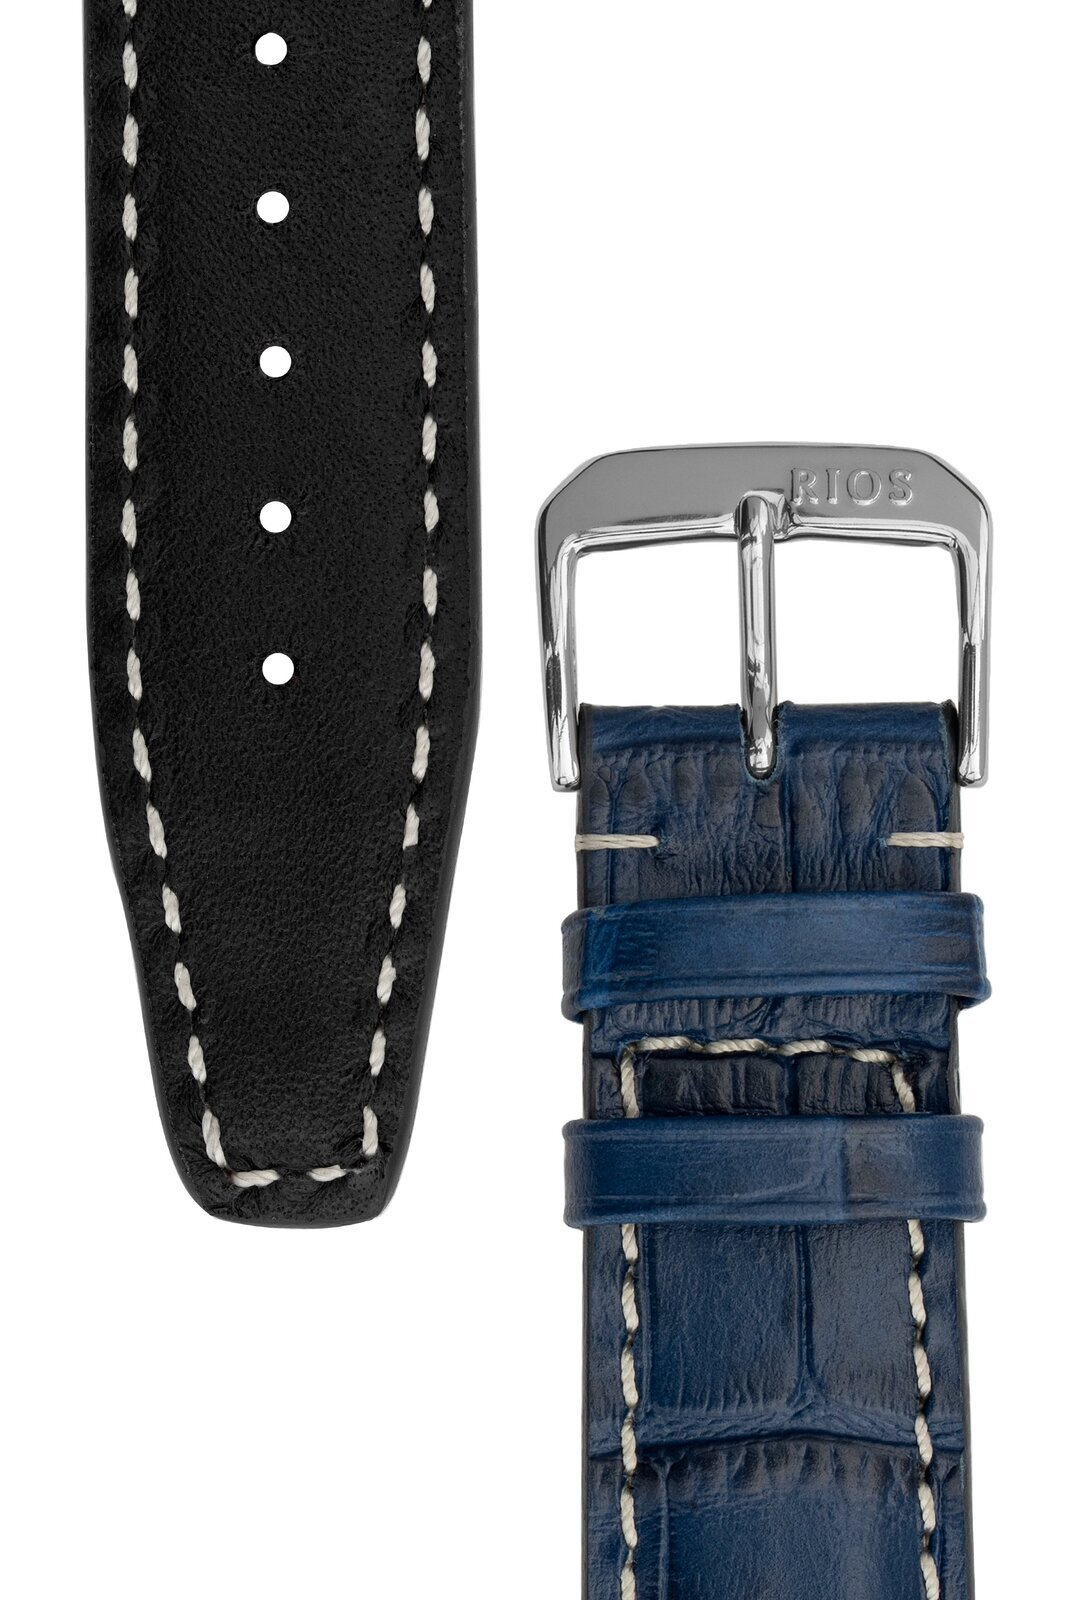 22mm Rios1931 BOSTON Alligator-Embossed Leather Watch Strap in NAVY BLUE